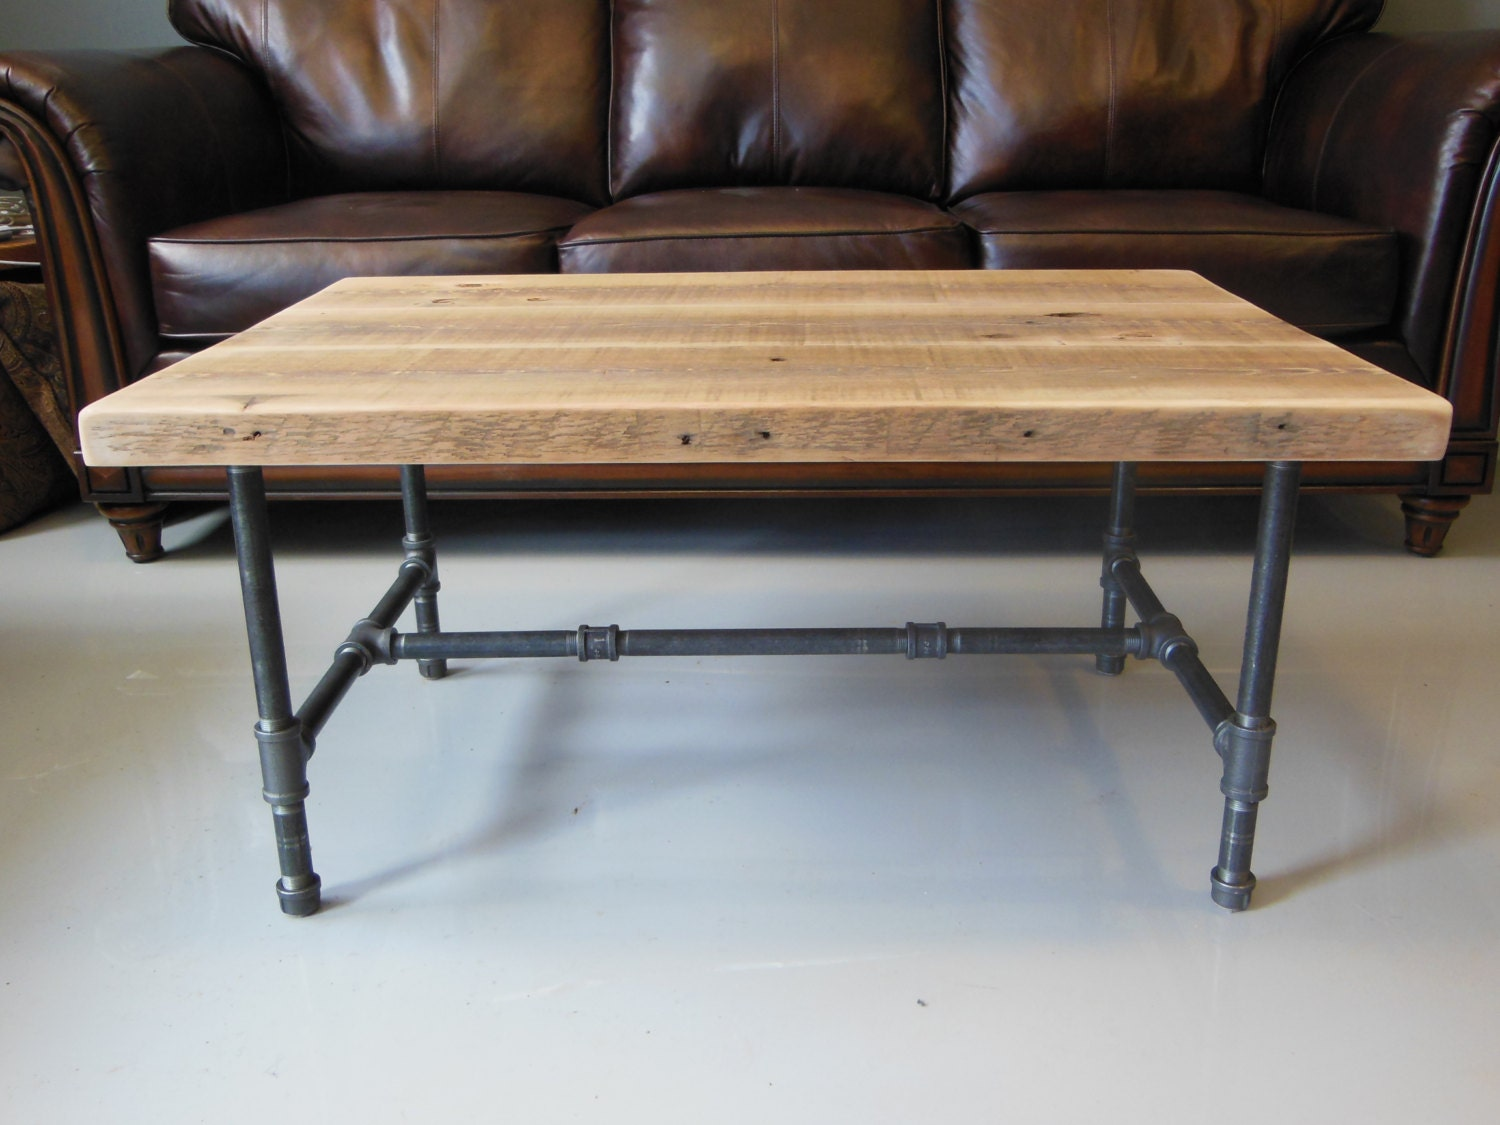 Reclaimed wood coffee table with industrial pipe legs by dendroco Legs for a coffee table